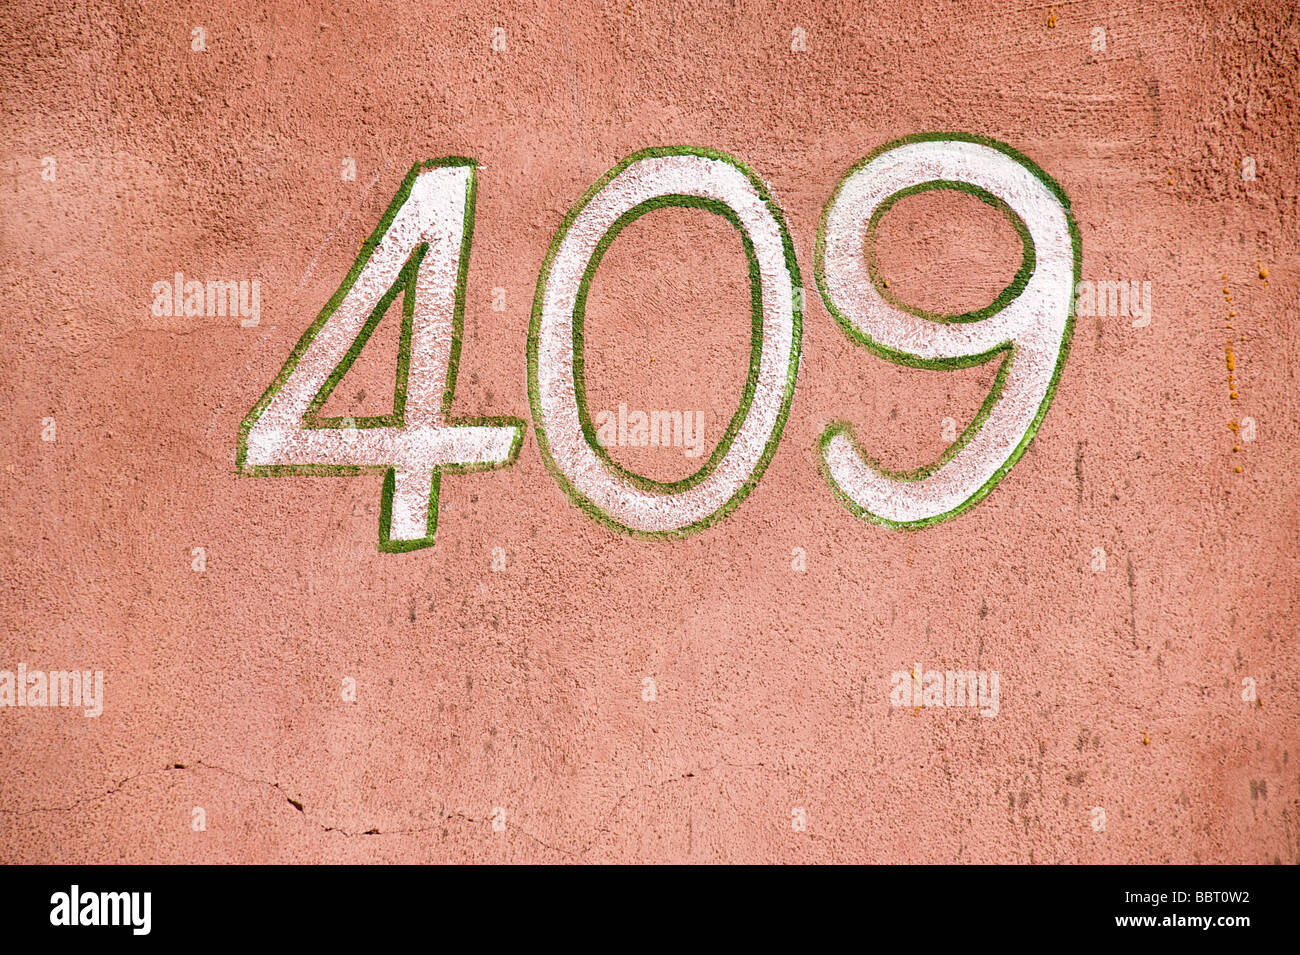 Address on an old adobe wall in Carrizozo, New Mexico. - Stock Image